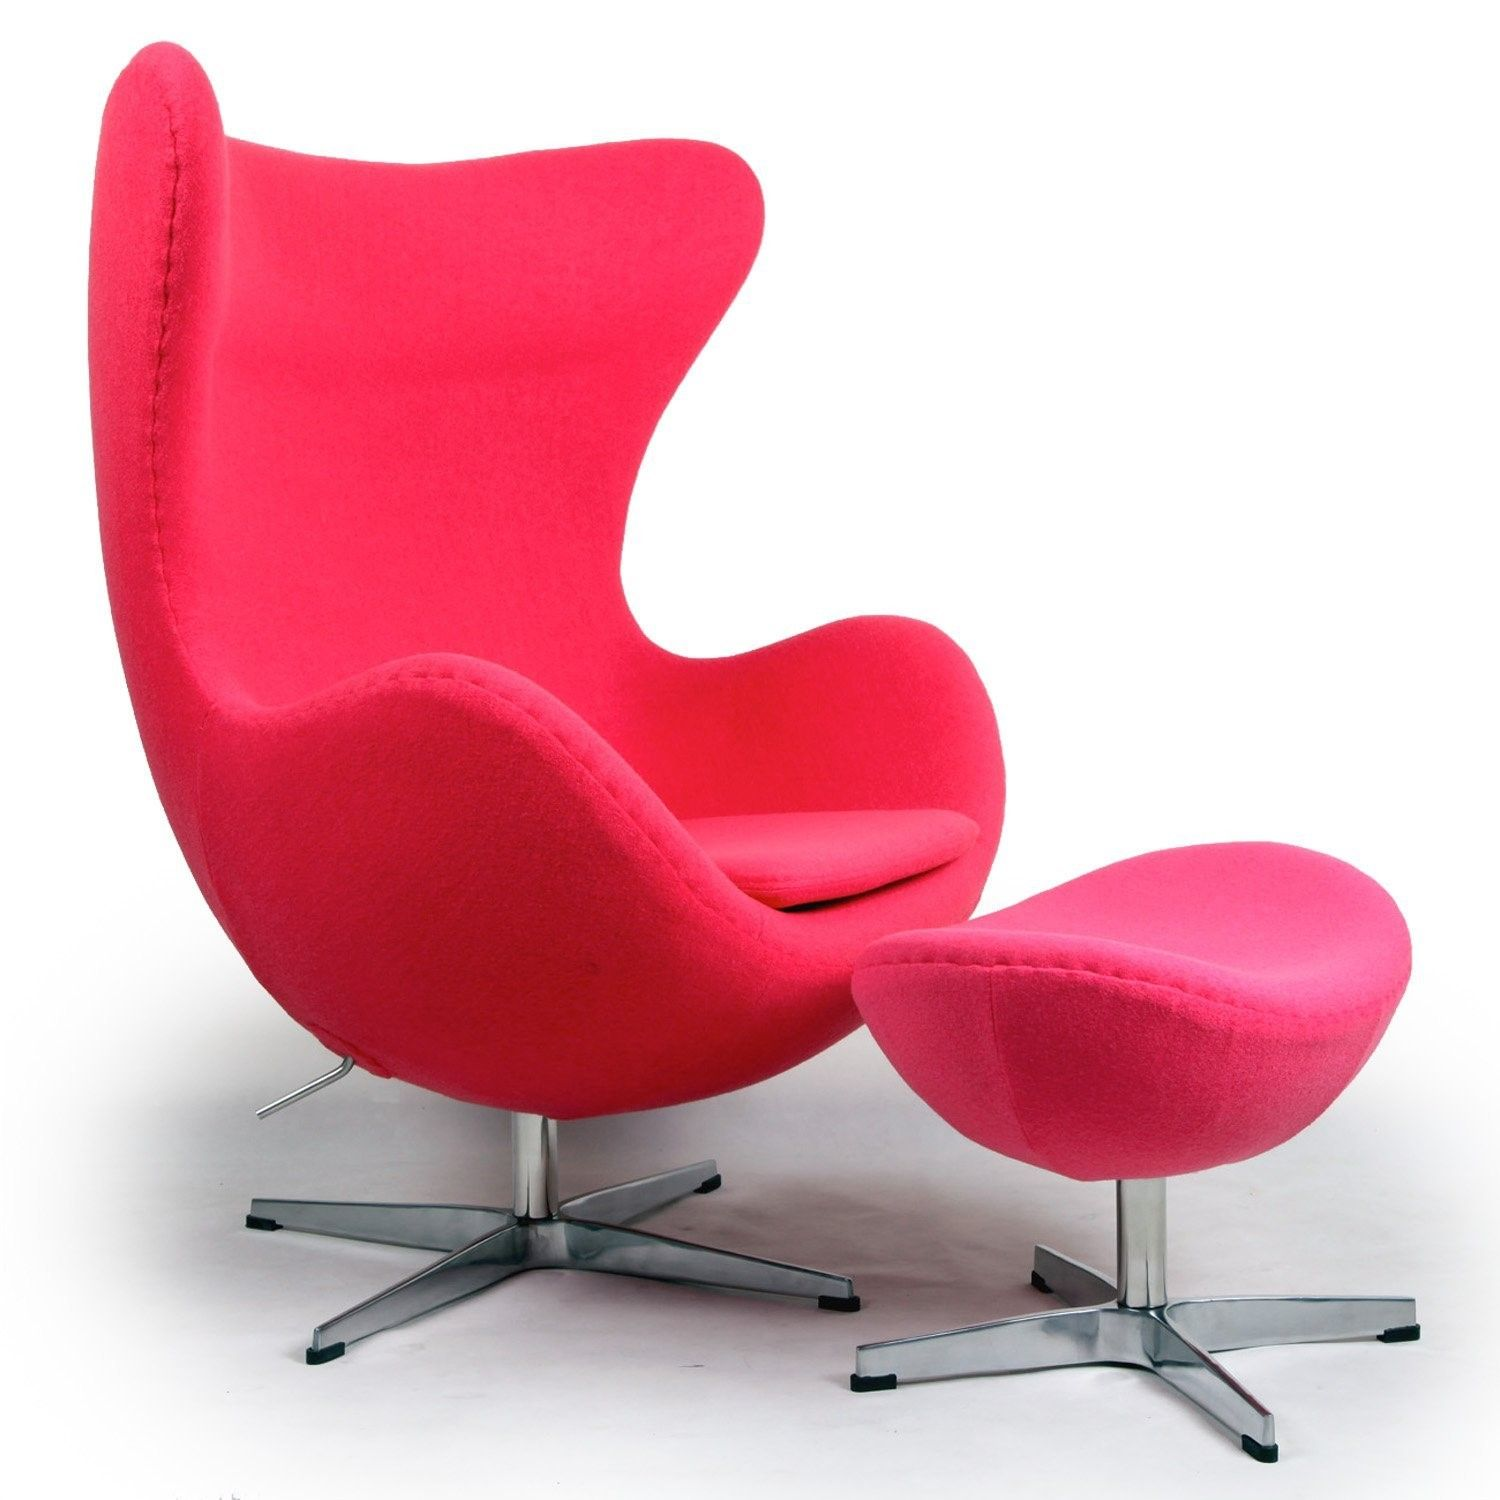 Excellent Cool Cool Chairs For Teens In Property Gallery Ideas Small Chair For Bedroom Bedroom Furniture Kids Bedroom Furniture